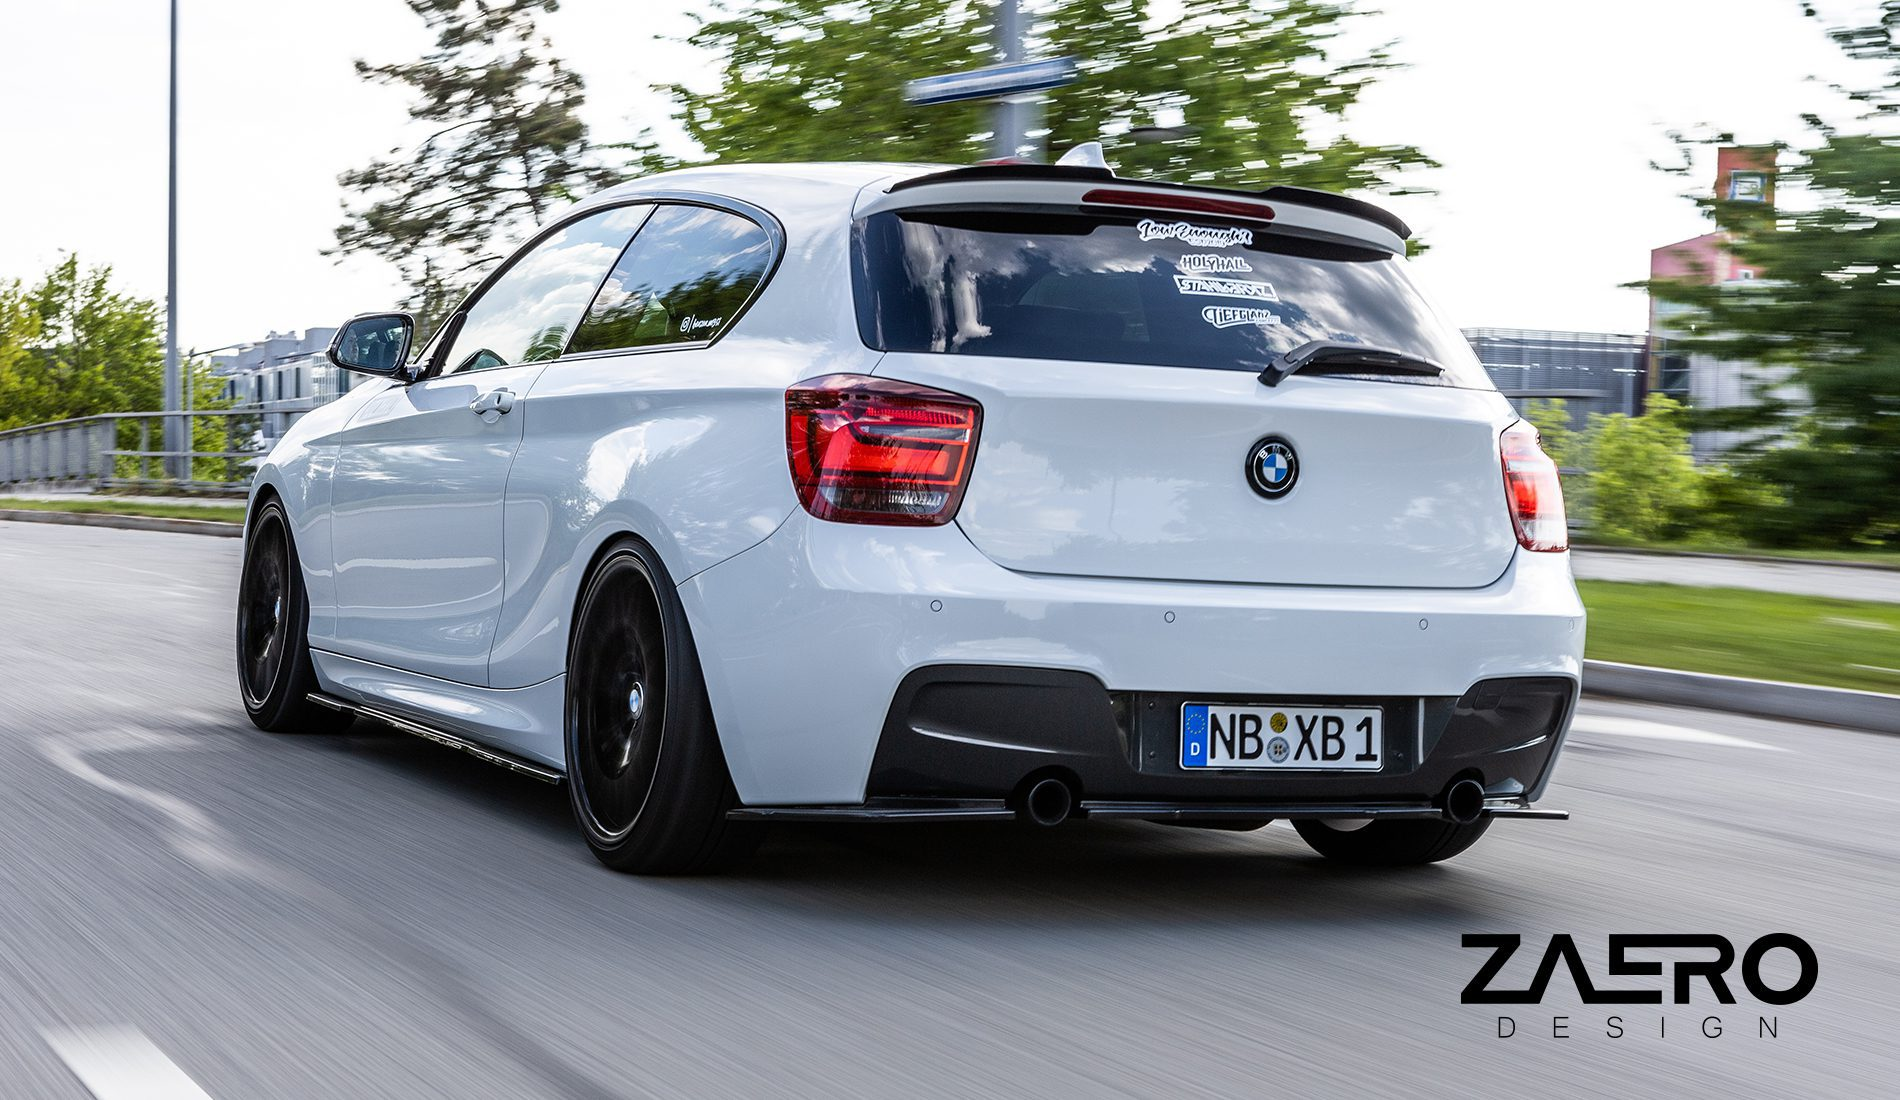 ZAERO-DESIGN-EVO-1-DIFFUSER-SPLITTER-EXTENSIONS-FOR-BMW-1-SERIES-116i-118i-120i-125i-M135-F20-F21-DIFFUSOR-EXTENSION-SPOILER-BODYKIT